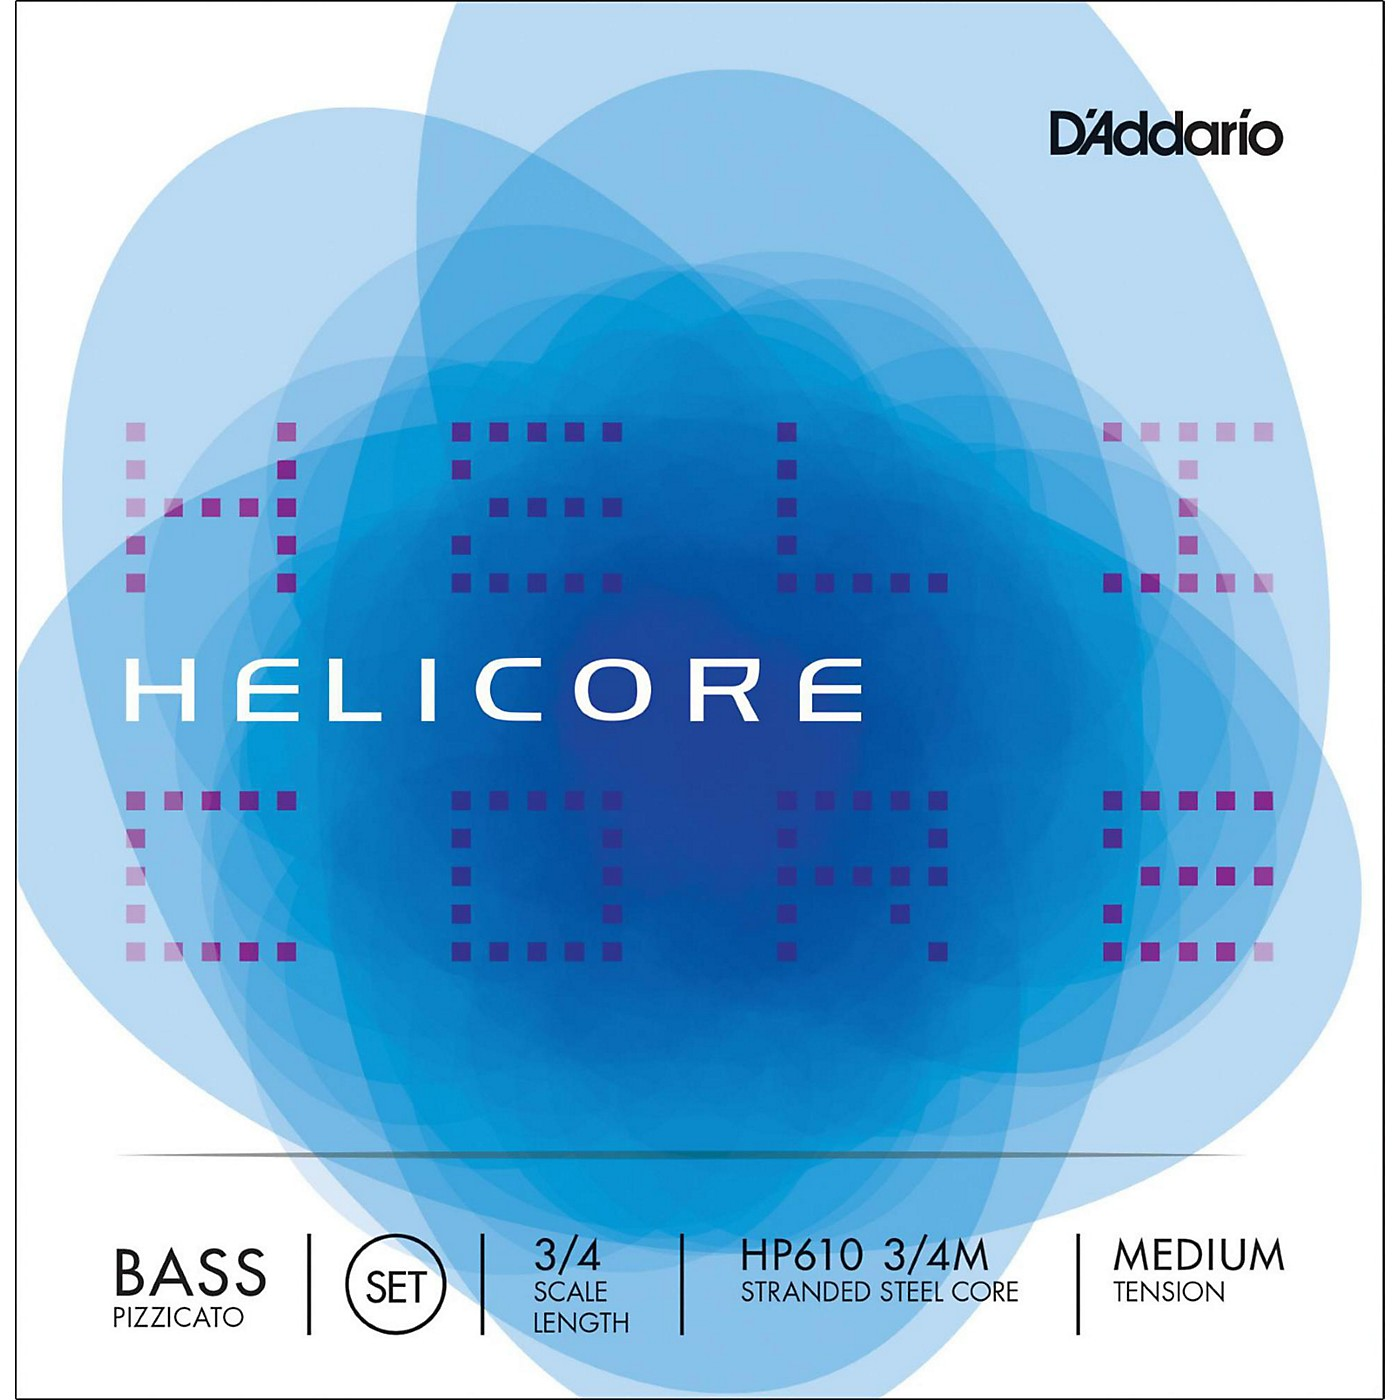 D'Addario HP610 Helicore Pizzicato 3/4 Size Double Bass String Set thumbnail